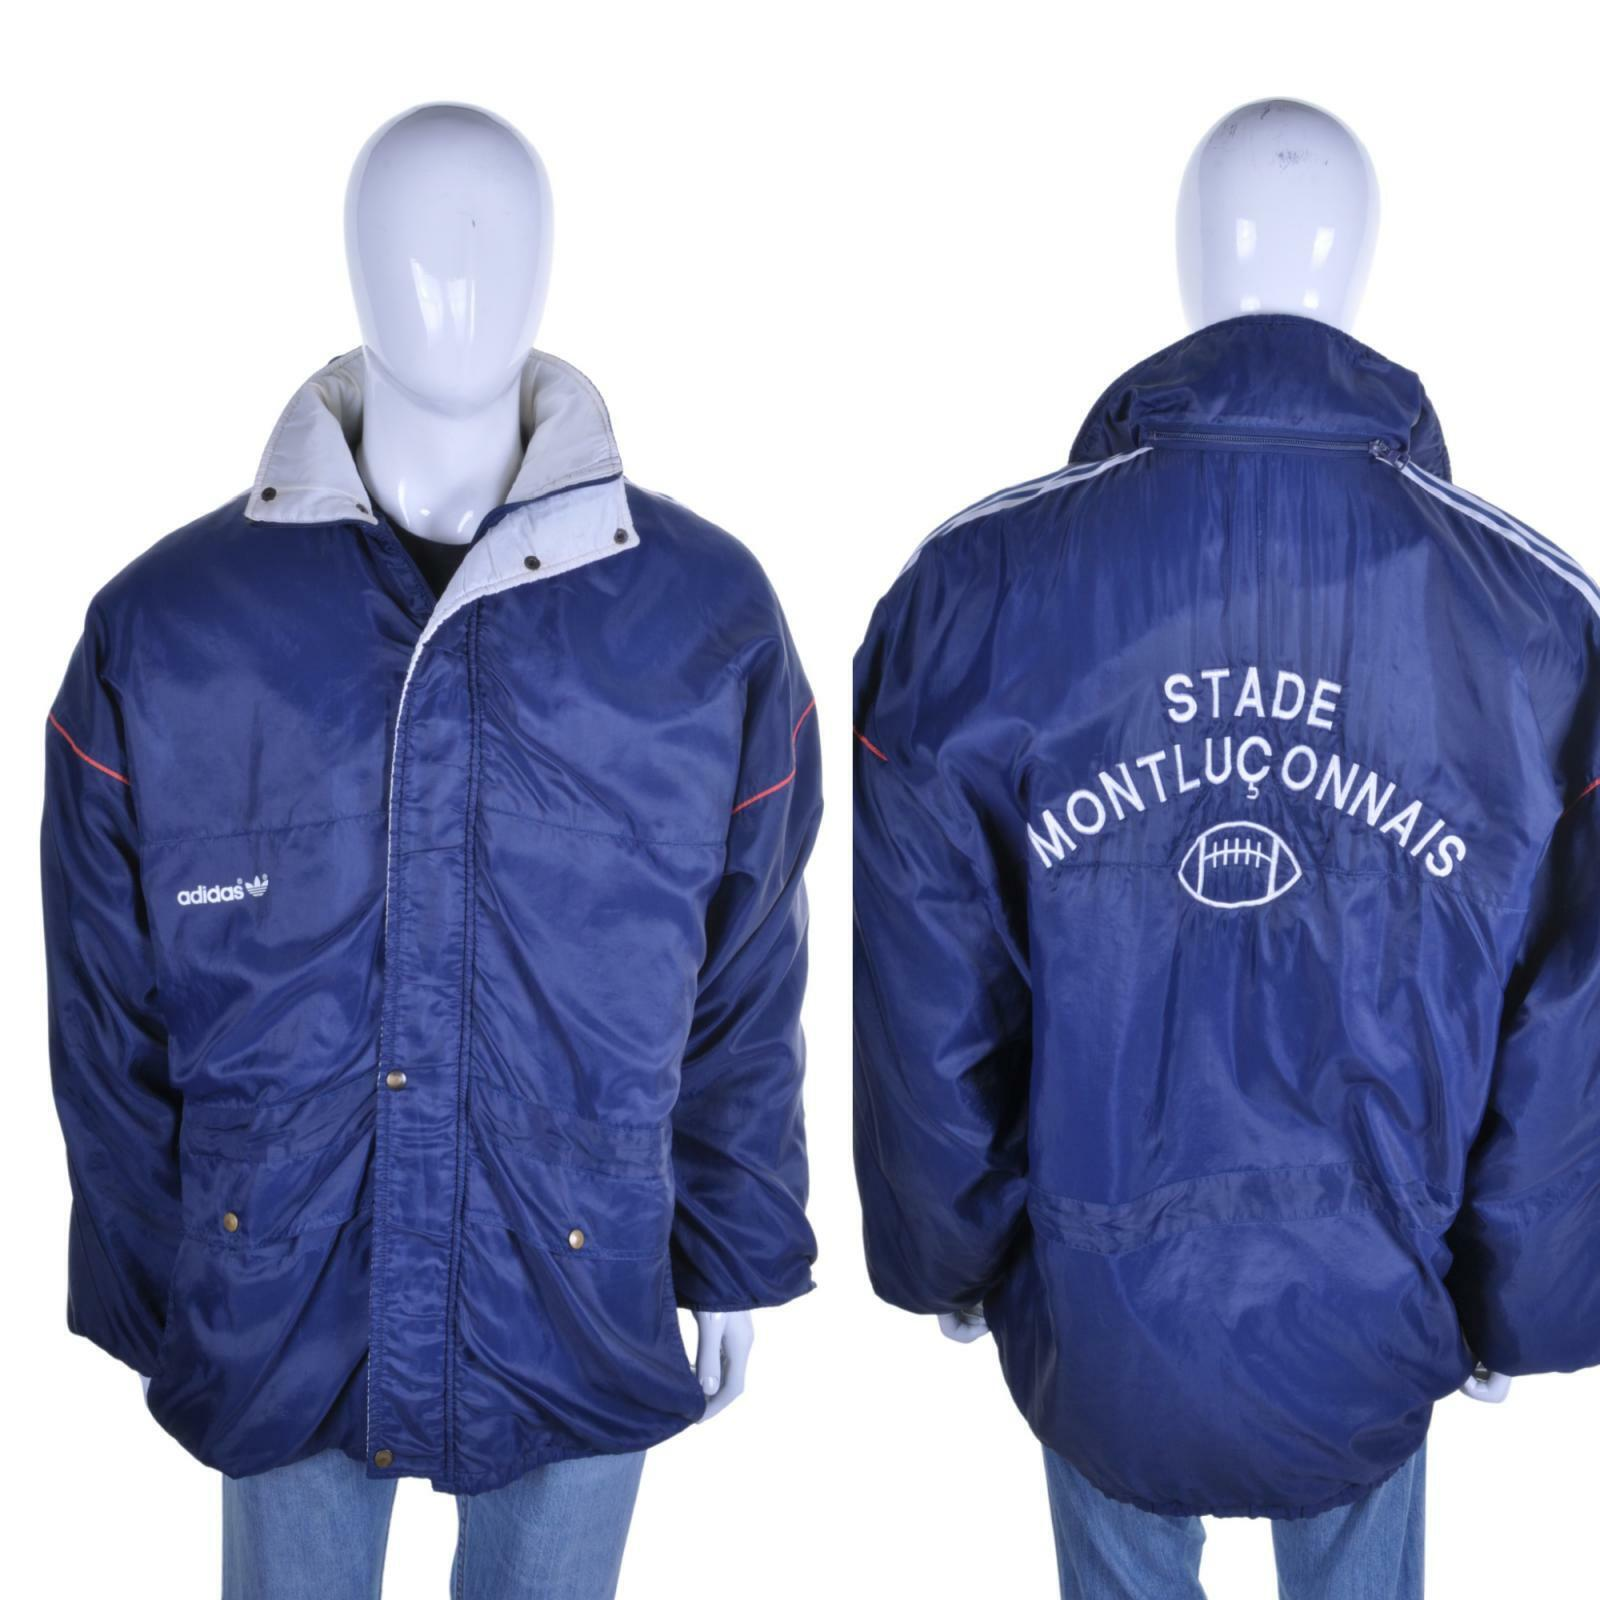 Adidas Vintage 70s/80s Tre Righe Cappotto XL Stade Montluconnais Rugby Giacca